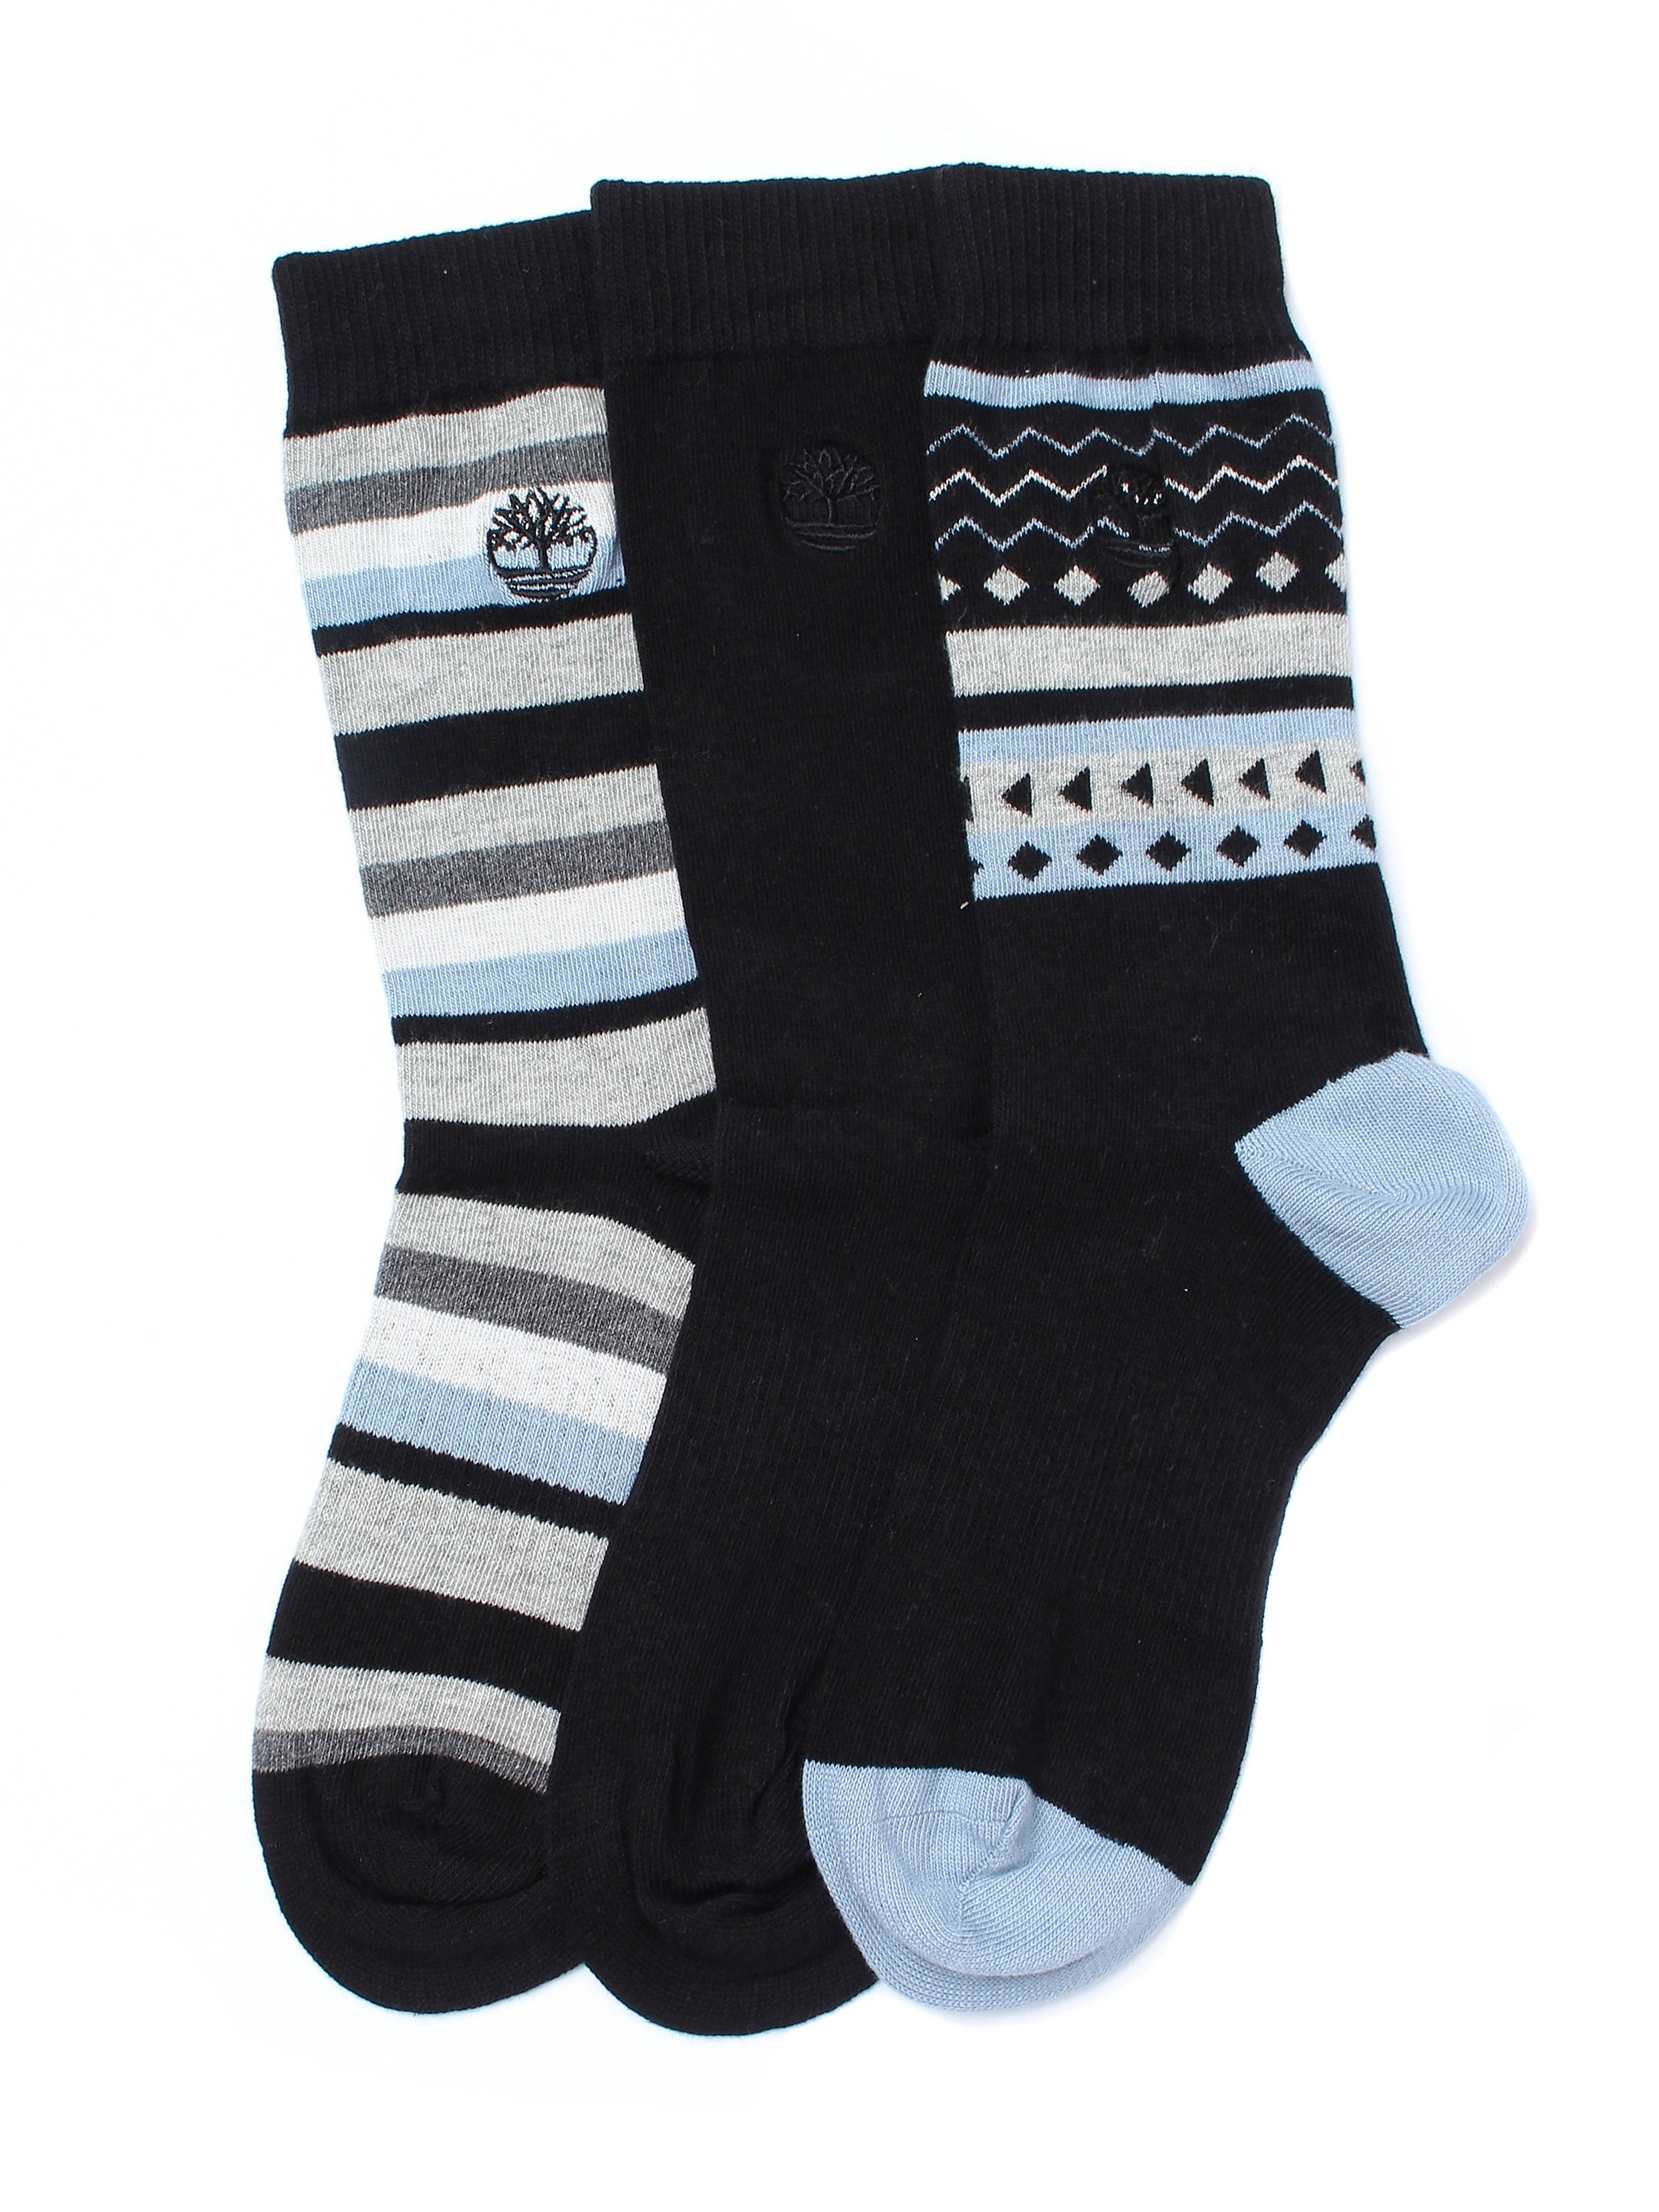 Timberland Men's Three Pack Stripe Rib Socks - Black